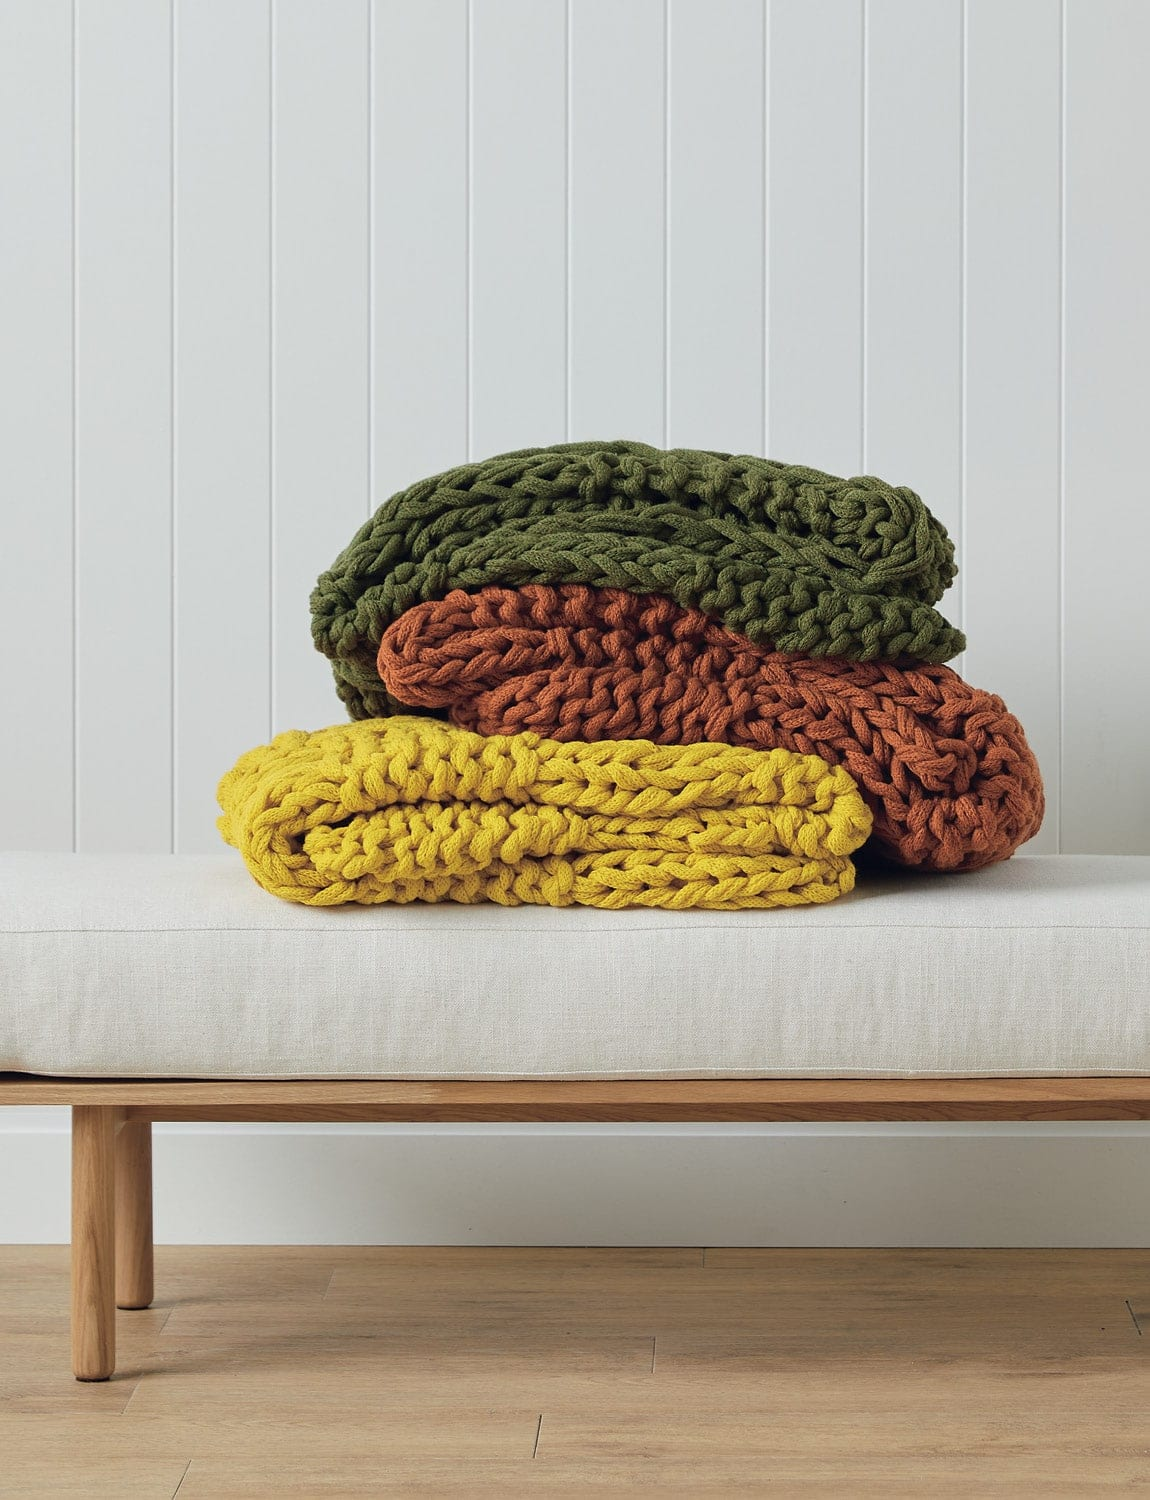 lorraine lea meridian throw blankets in green, orange and yellow chunky knit